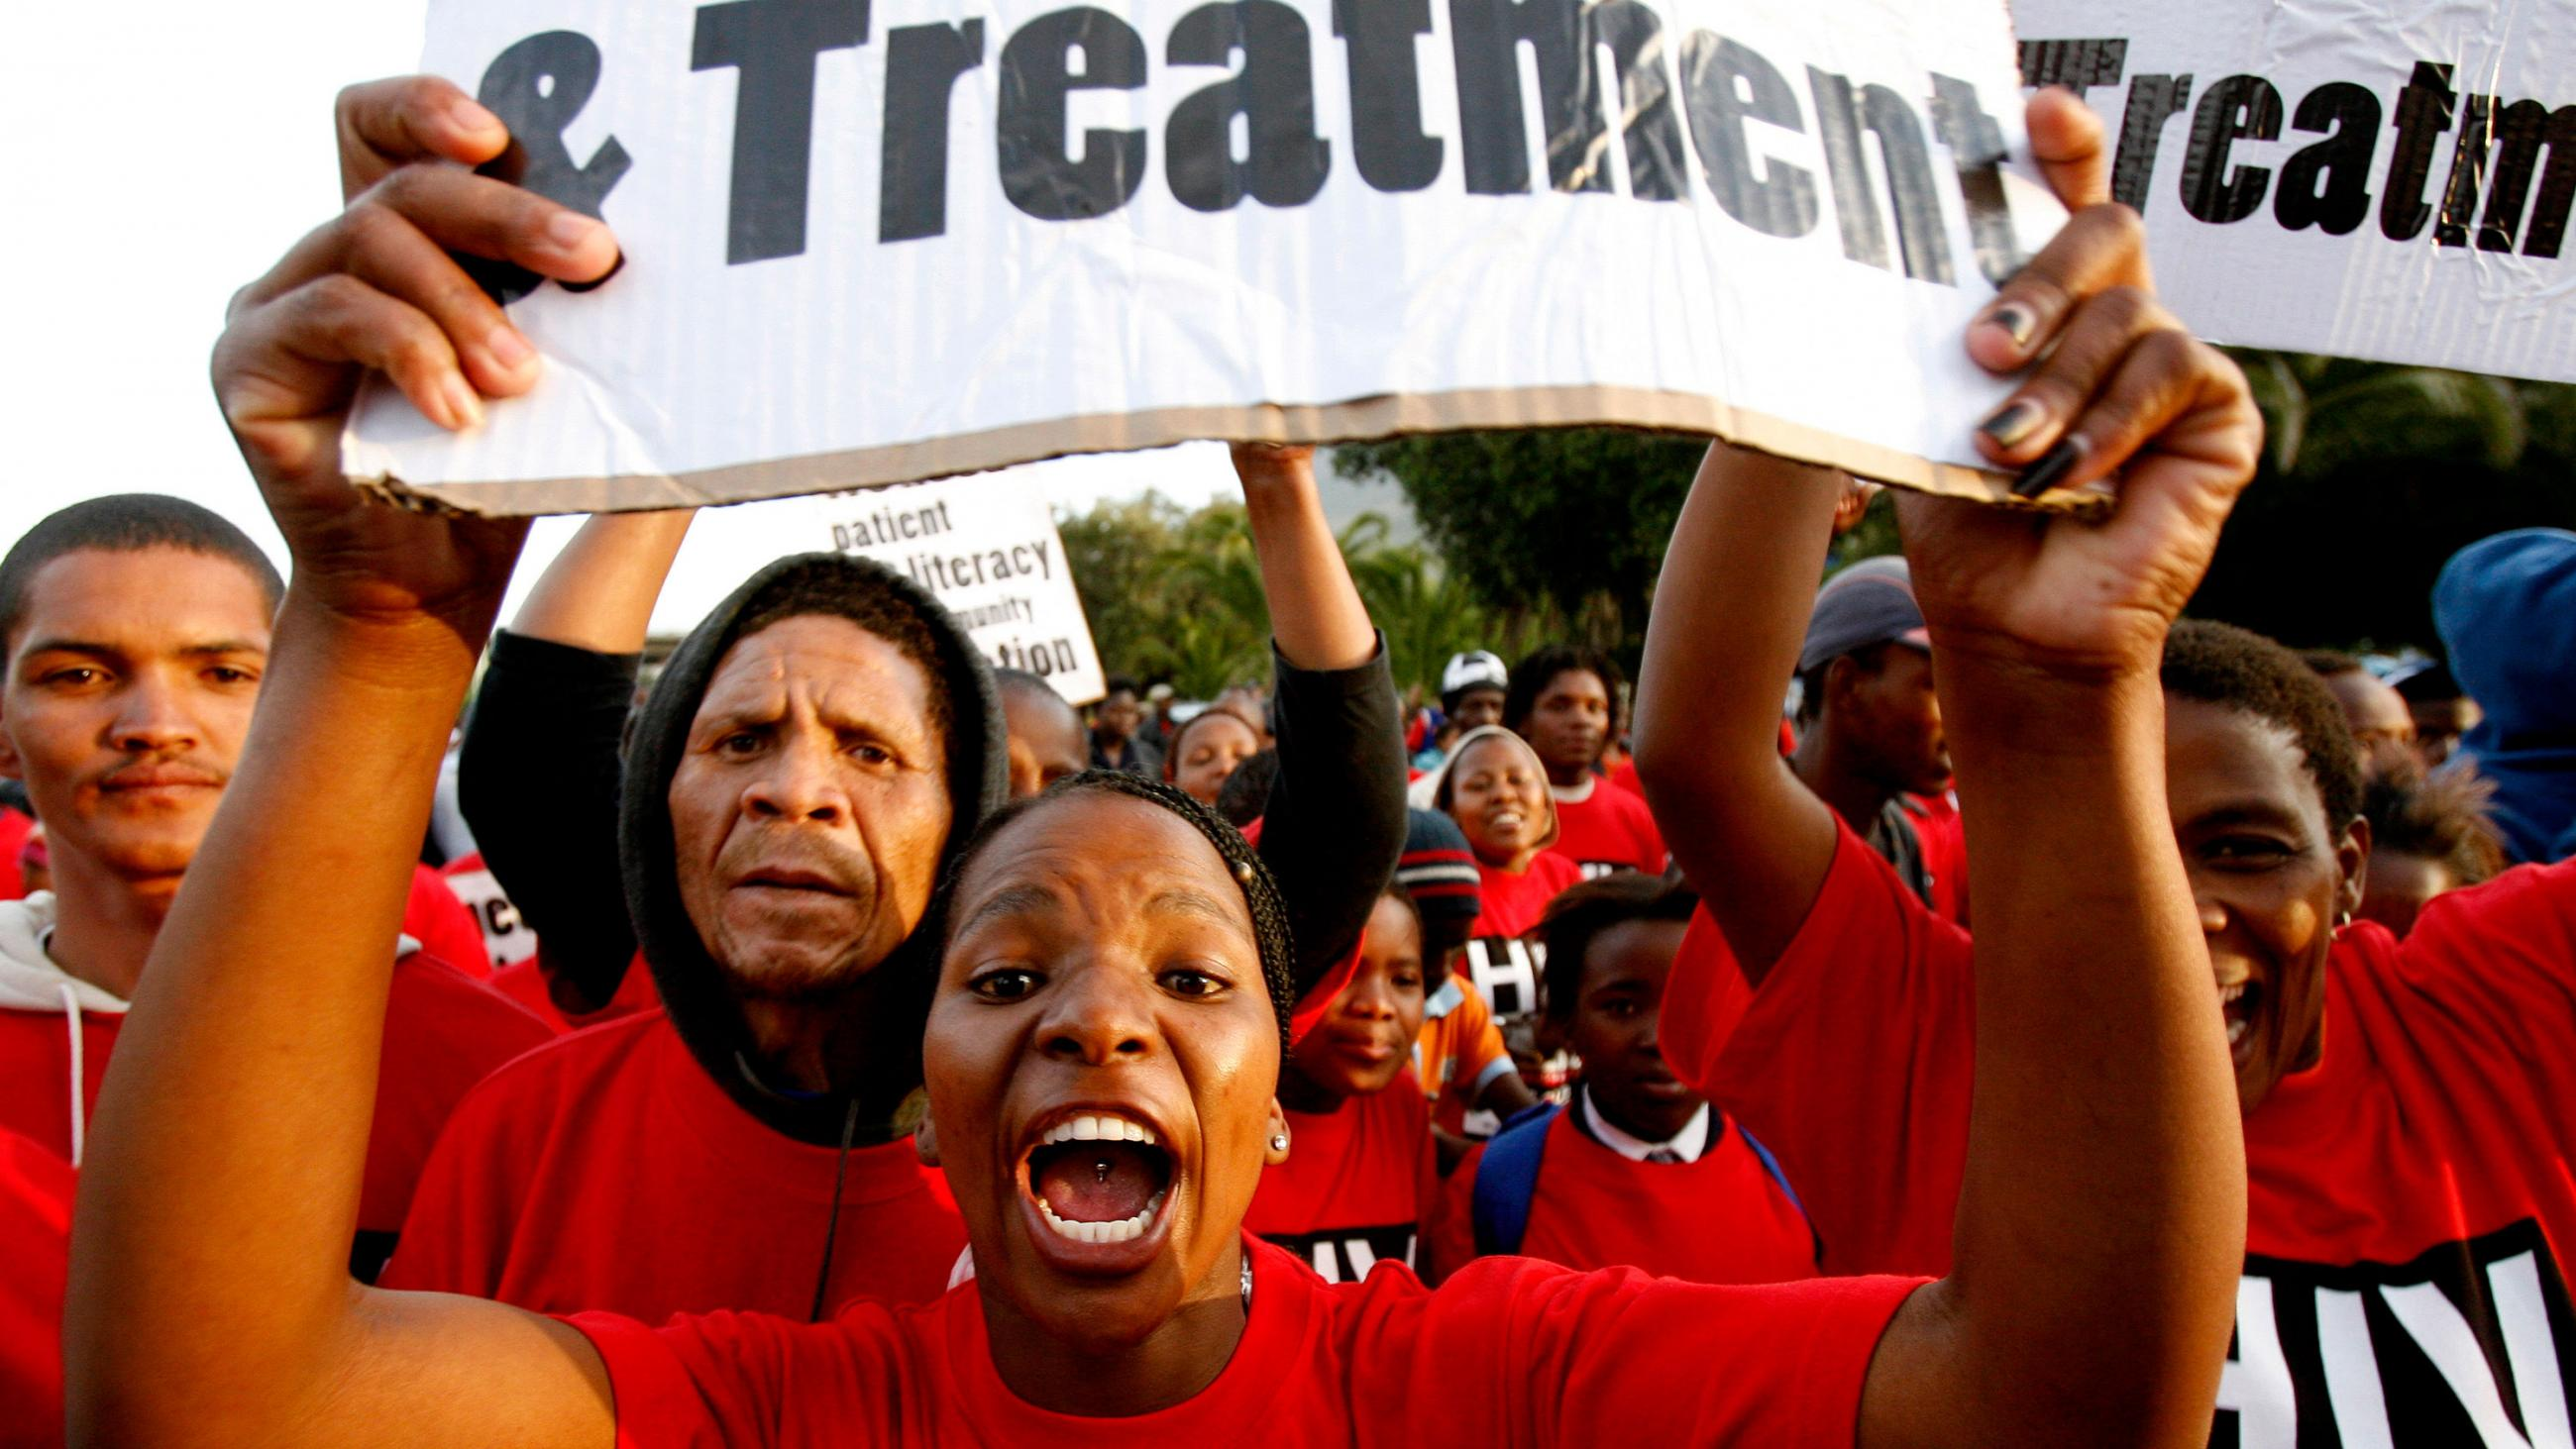 Demonstrators march through the streets of Cape Town to highlight the need for new strategies and medicines to curb the spread of tuberculosis on November 8, 2007. Picture shows a crowd of people wearing red shirts with a woman at center shouting into the camera